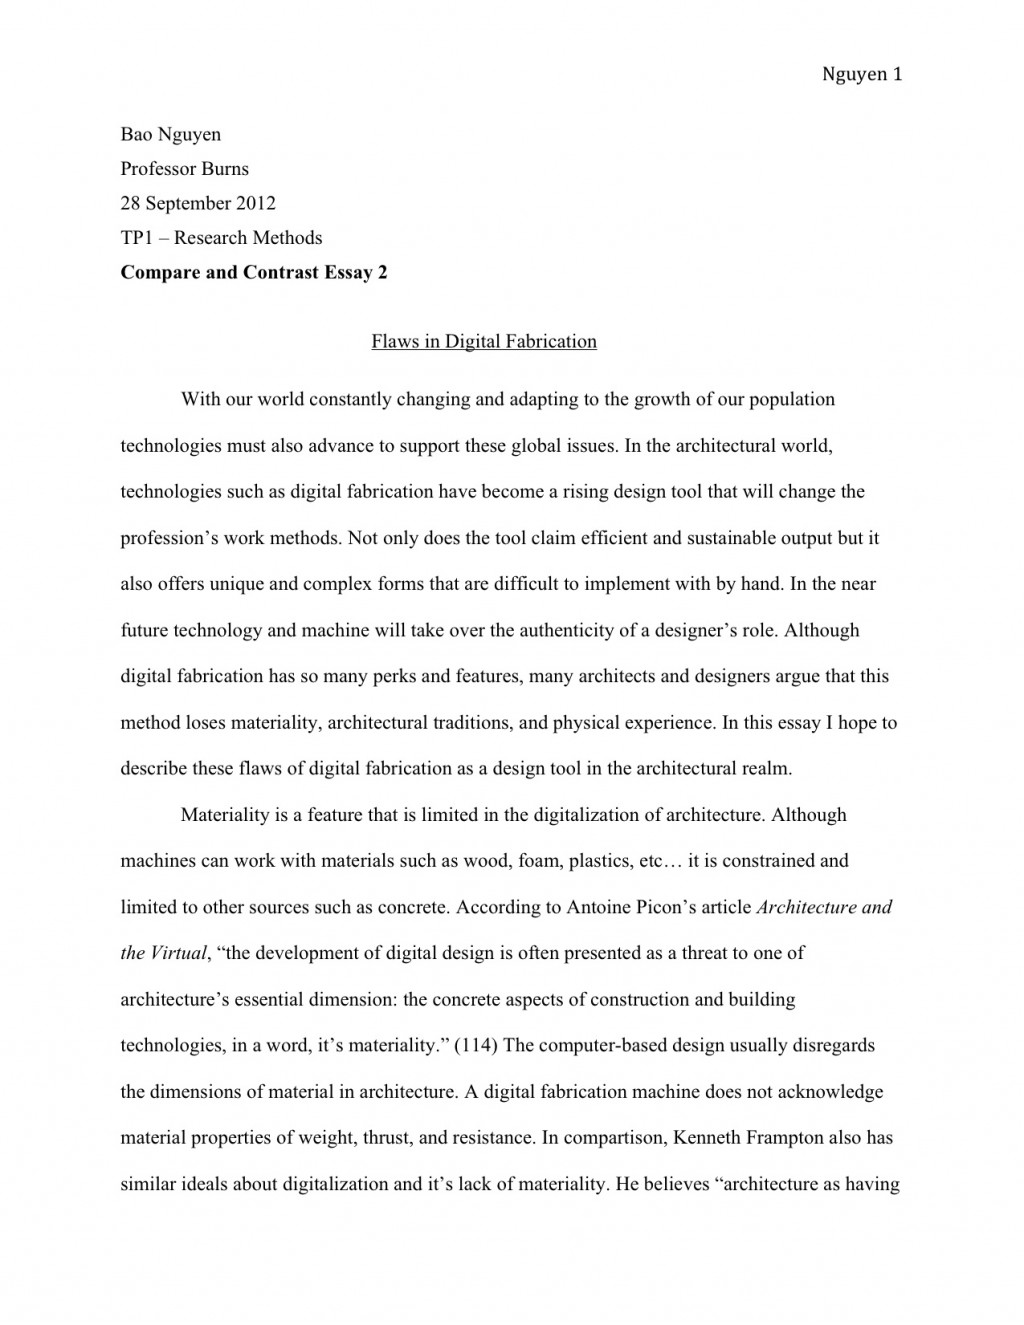 005 How To Write An Essay Example Tp1 3 Shocking About Myself For A Scholarship Excellent Conclusion Pdf Large